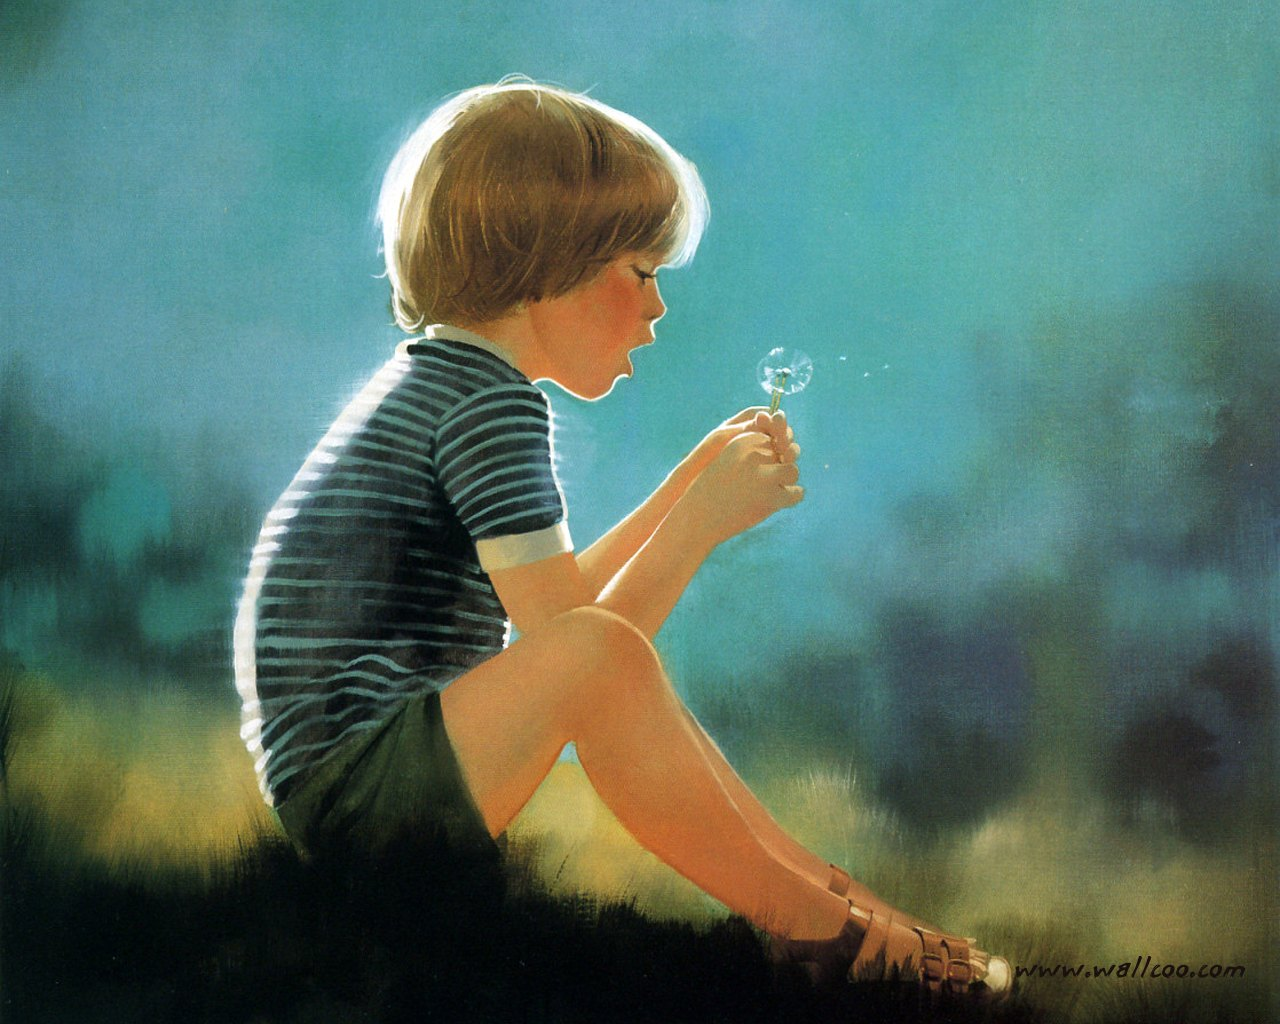 Cute N Lovely Wallpapers Heartwarming Childhood Monents Donald Zolan S Oil